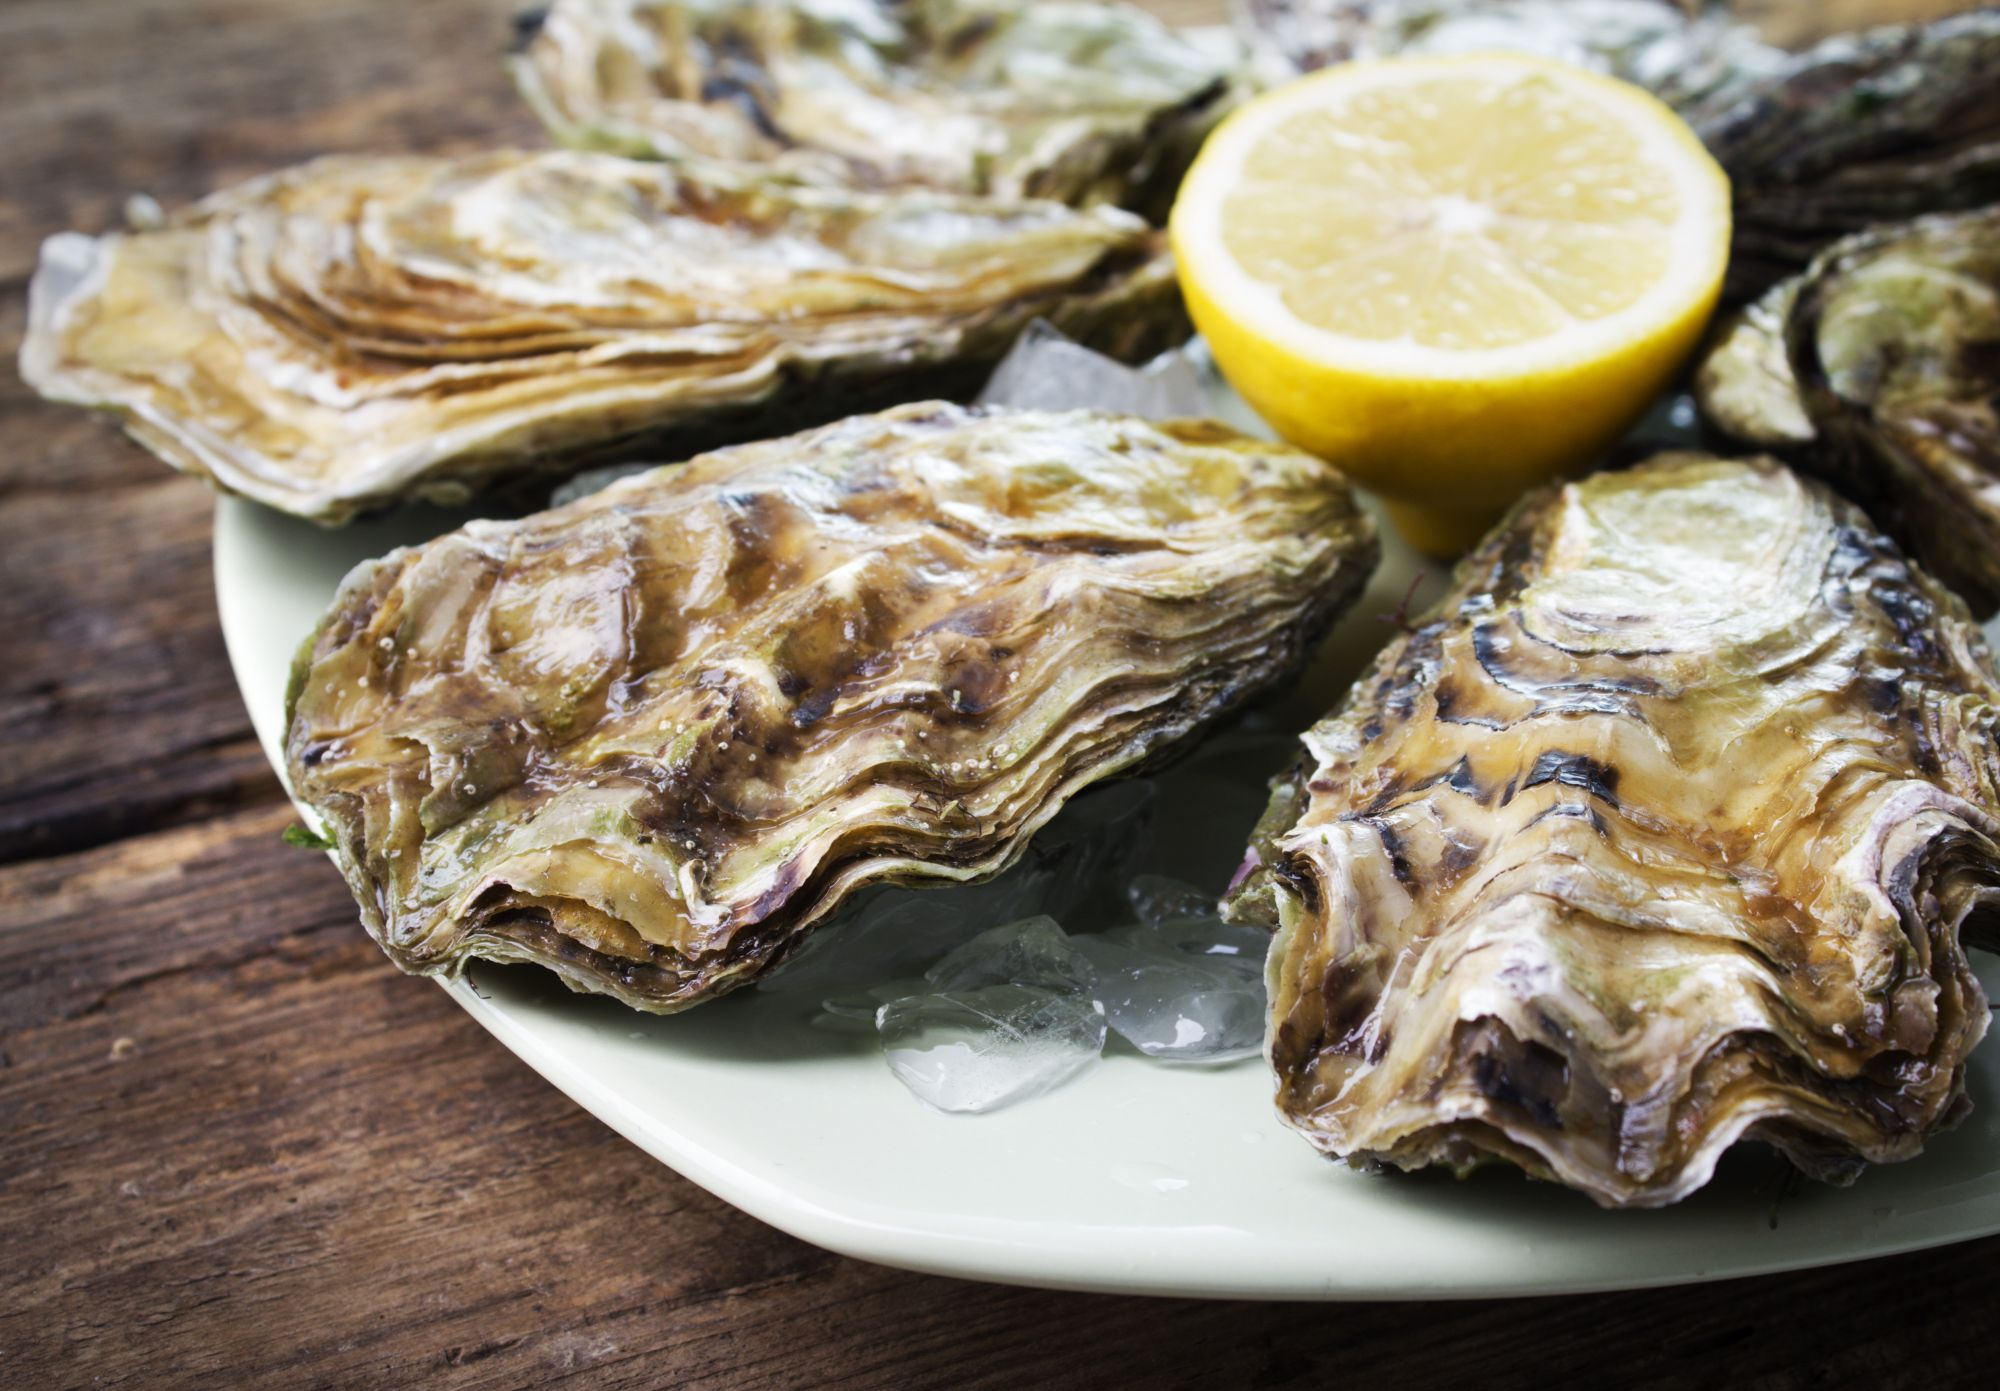 Oysters available from Euclid Fish Company in Cleveland, Ohio